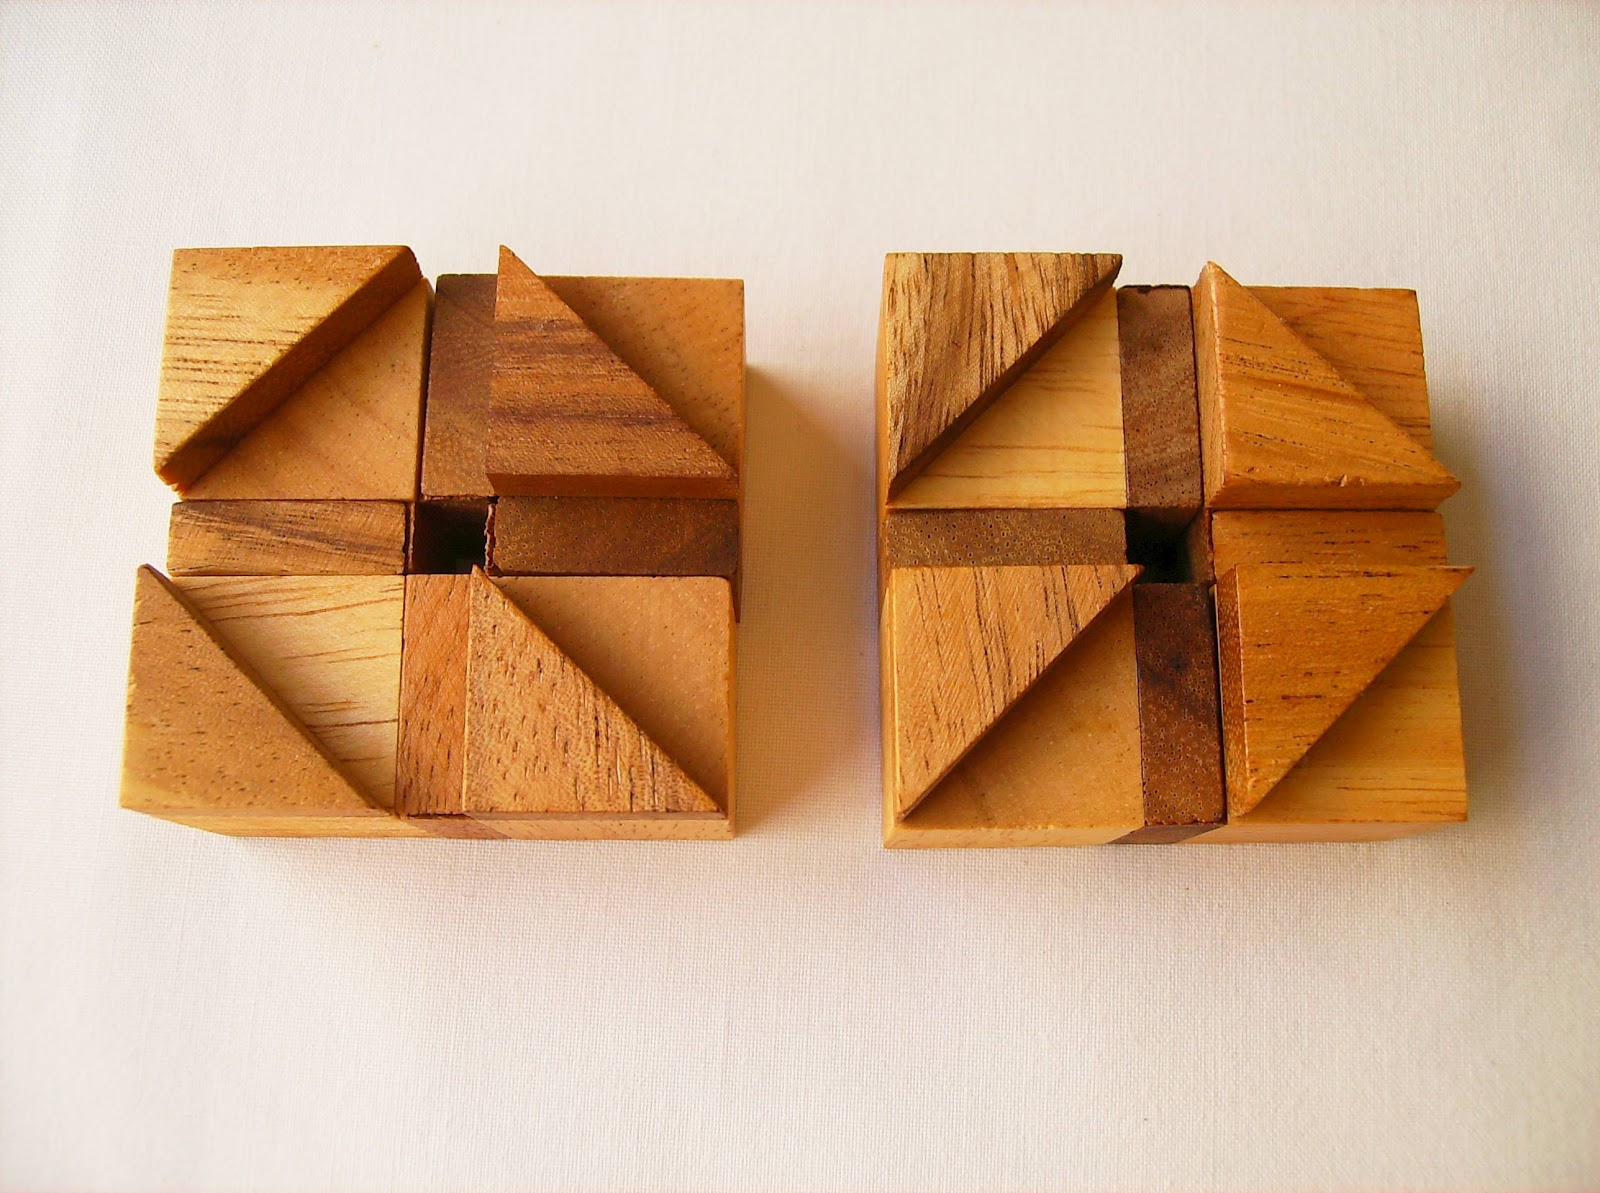 Gabriel Fernandes' Puzzle Collection: 24 Triangles